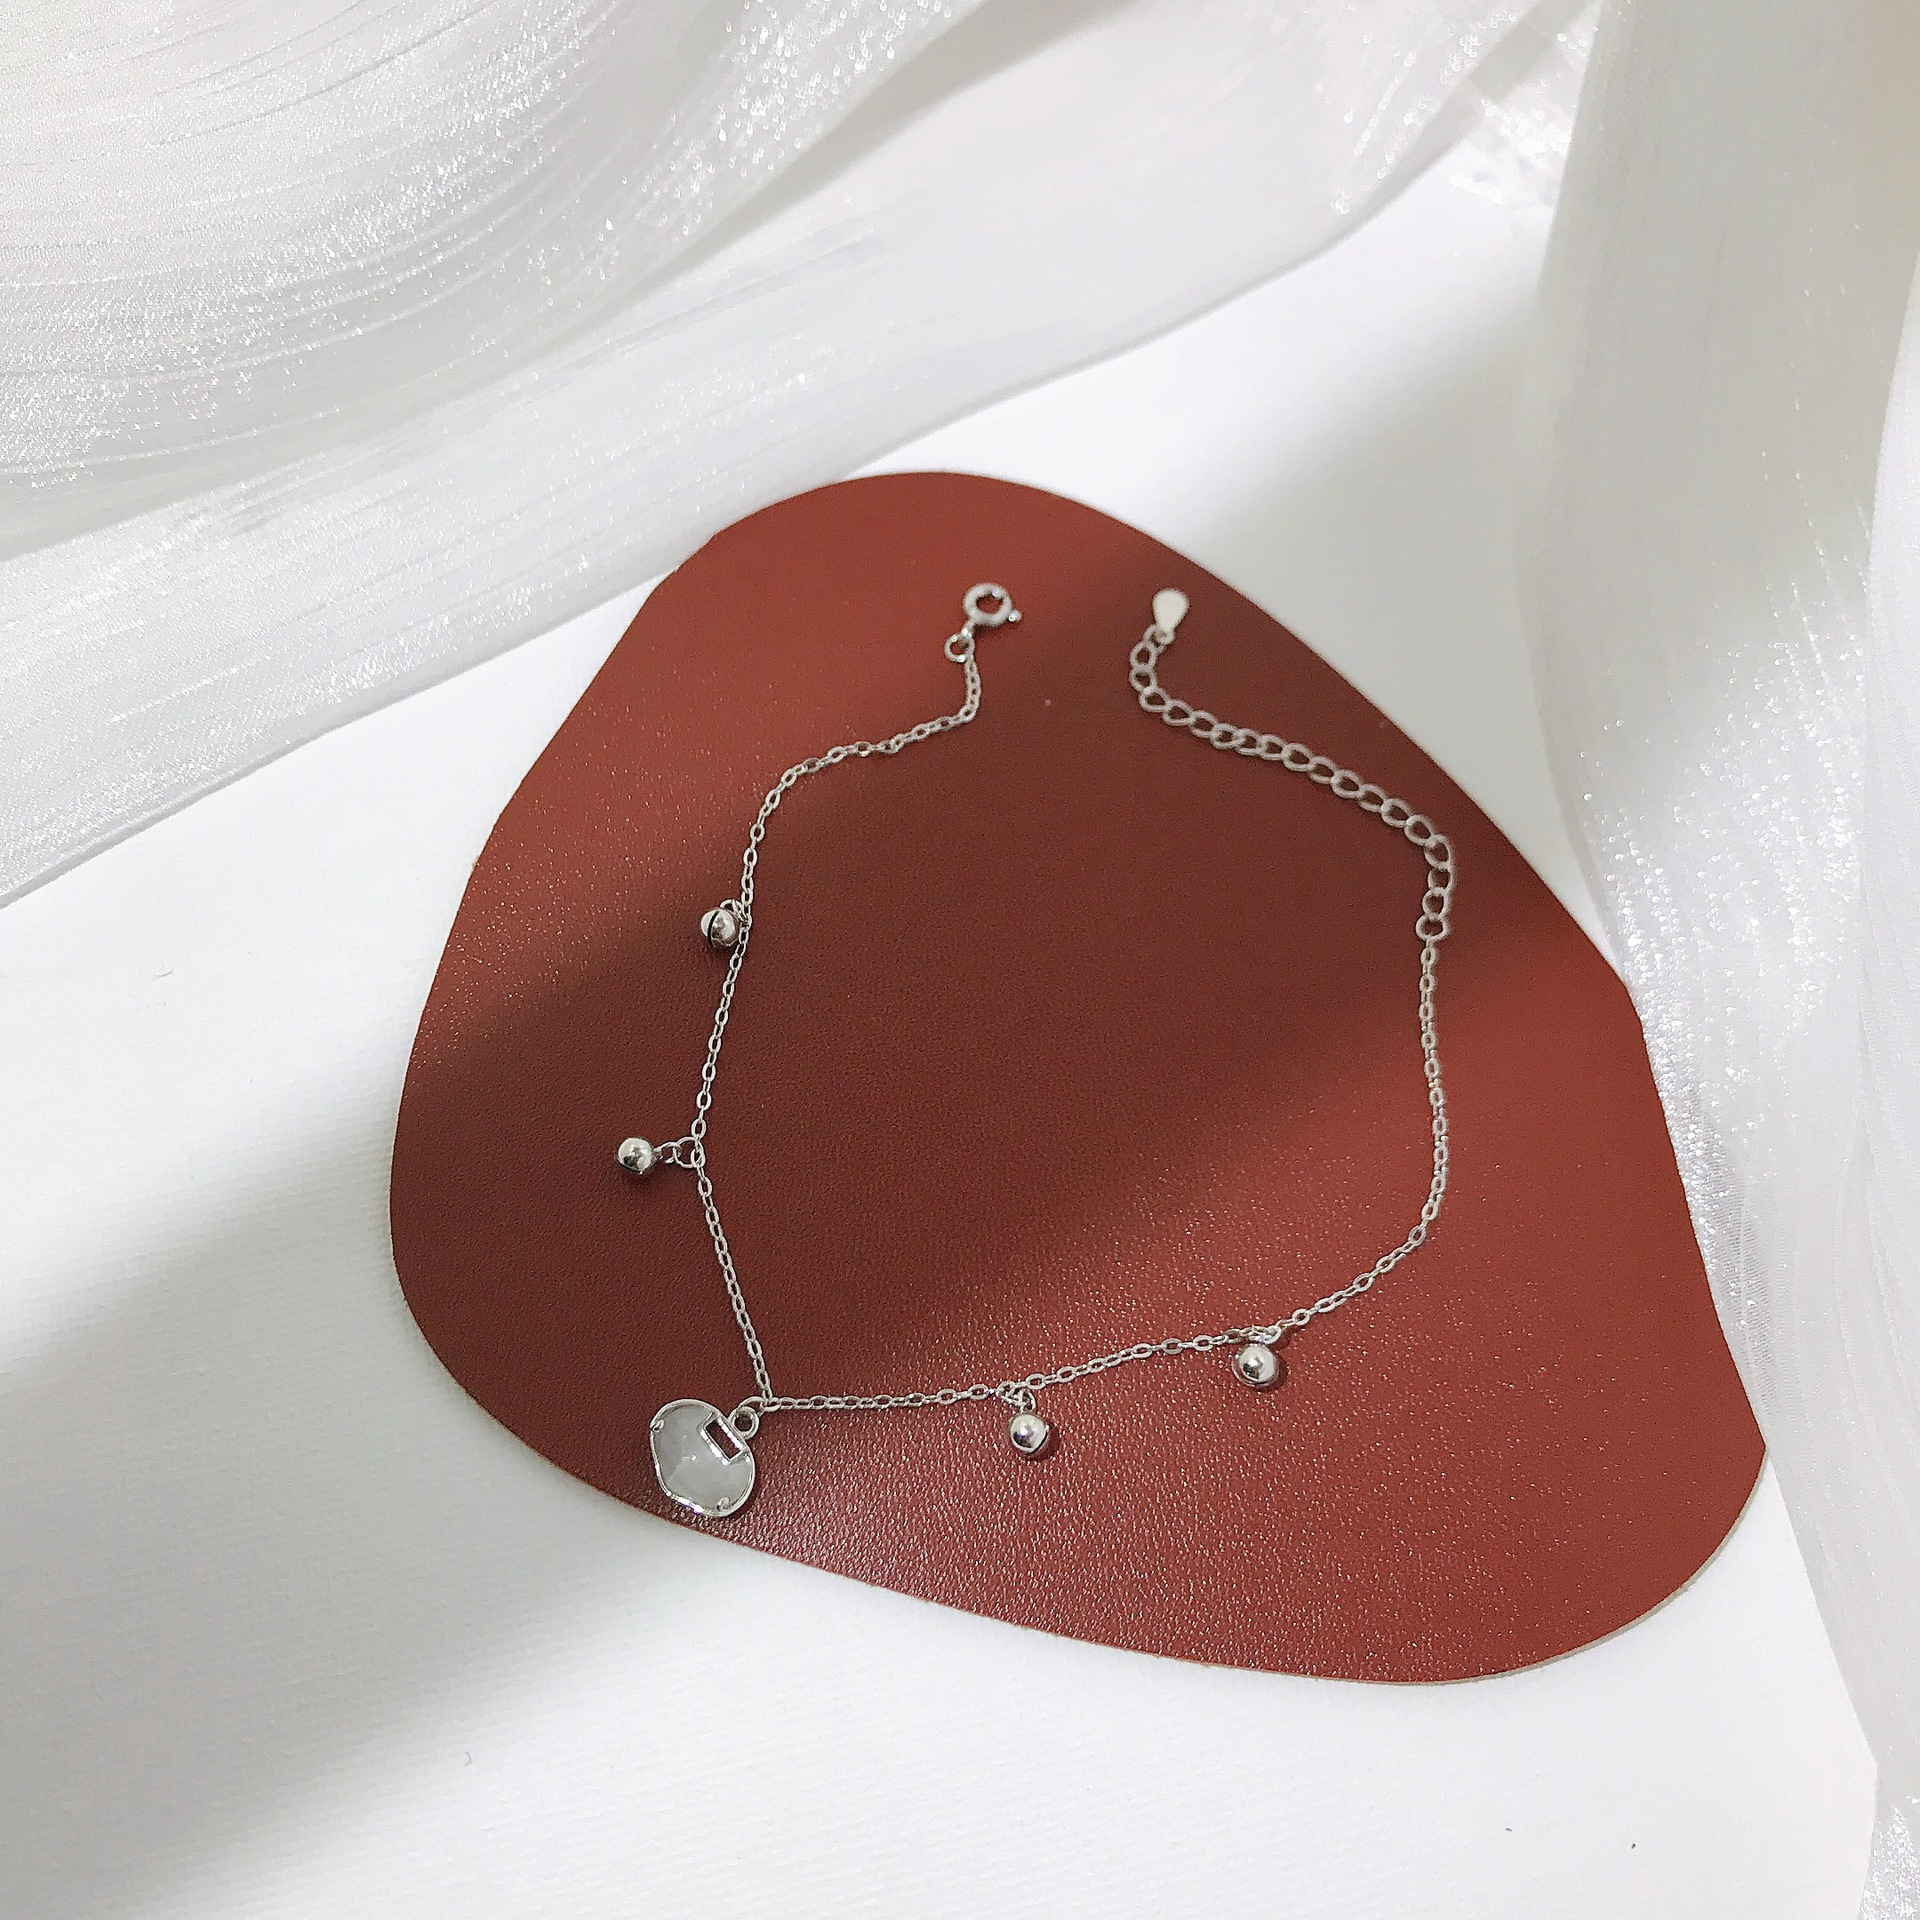 Elegant and Chic Anklet for Gifts to Girlish Friends